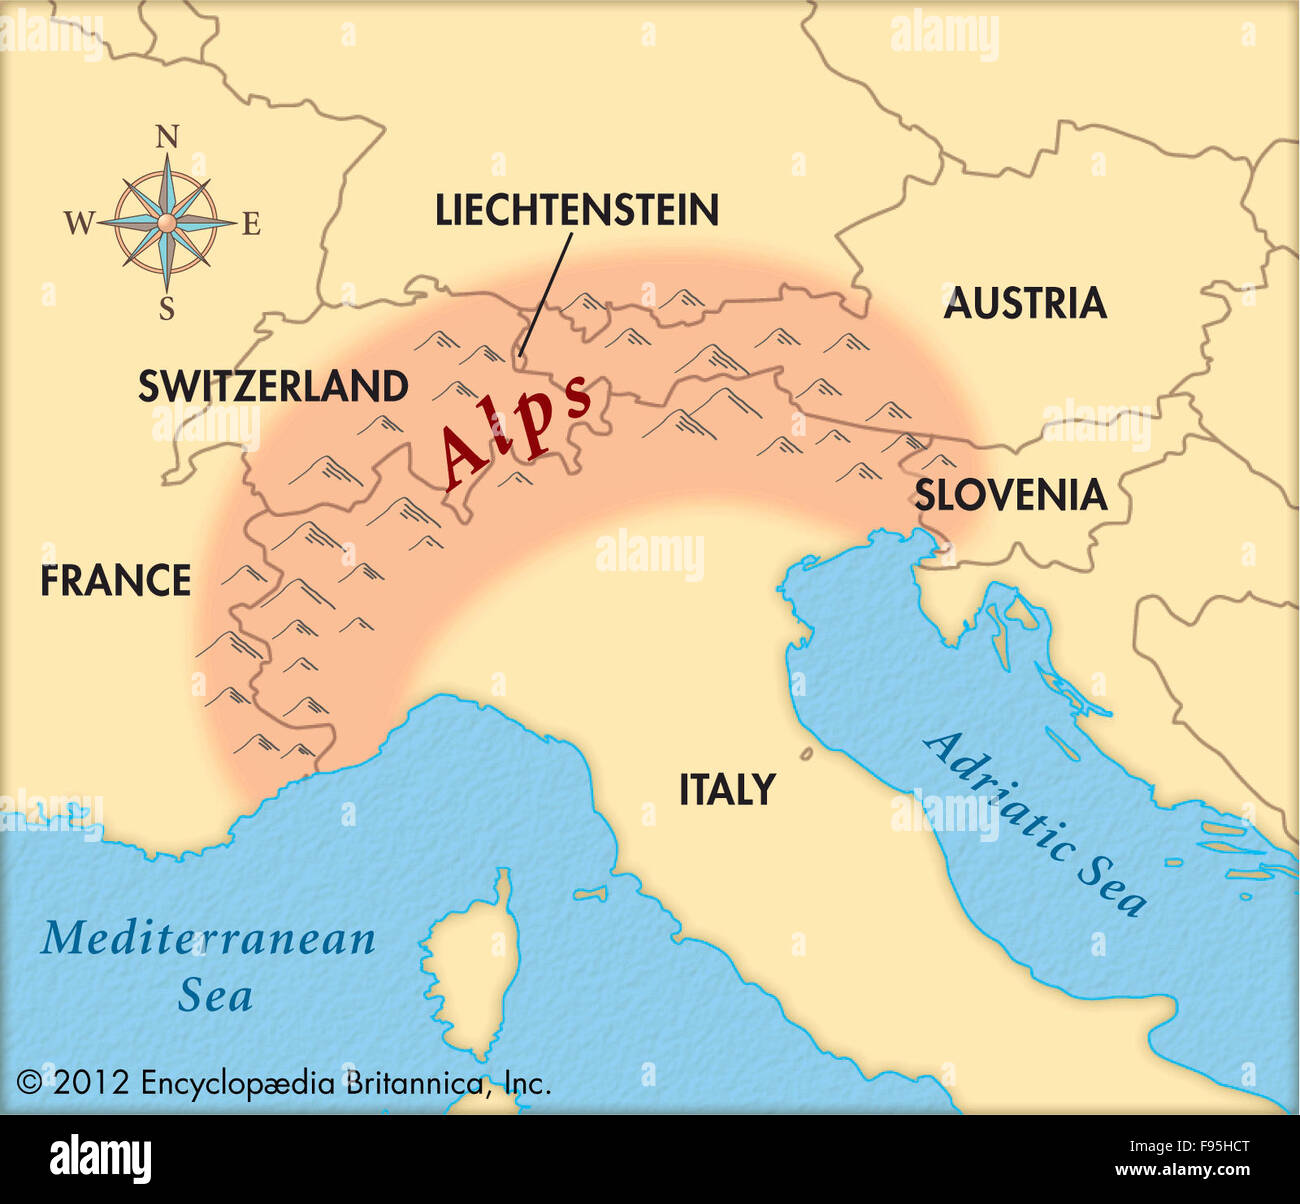 Alps Mountain Range World Map Showing. World Map With ...